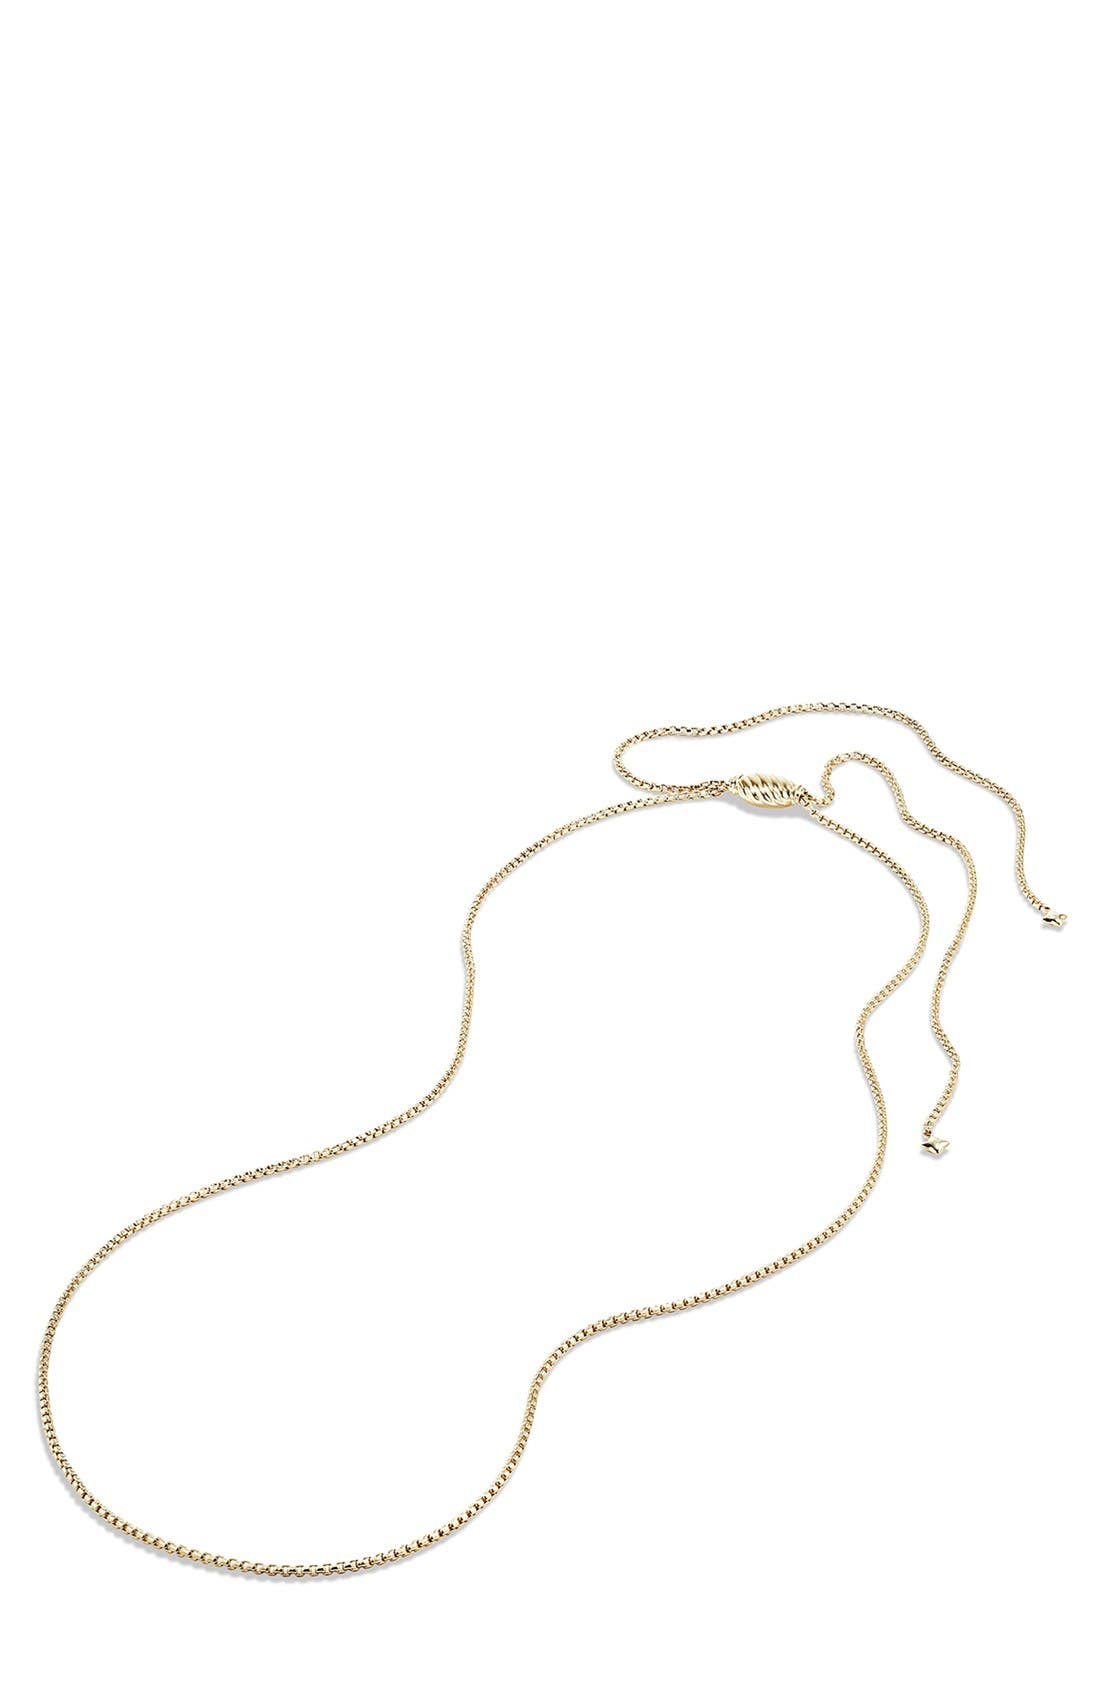 Box Chain Necklace in 18K Gold,                             Alternate thumbnail 2, color,                             Yellow Gold